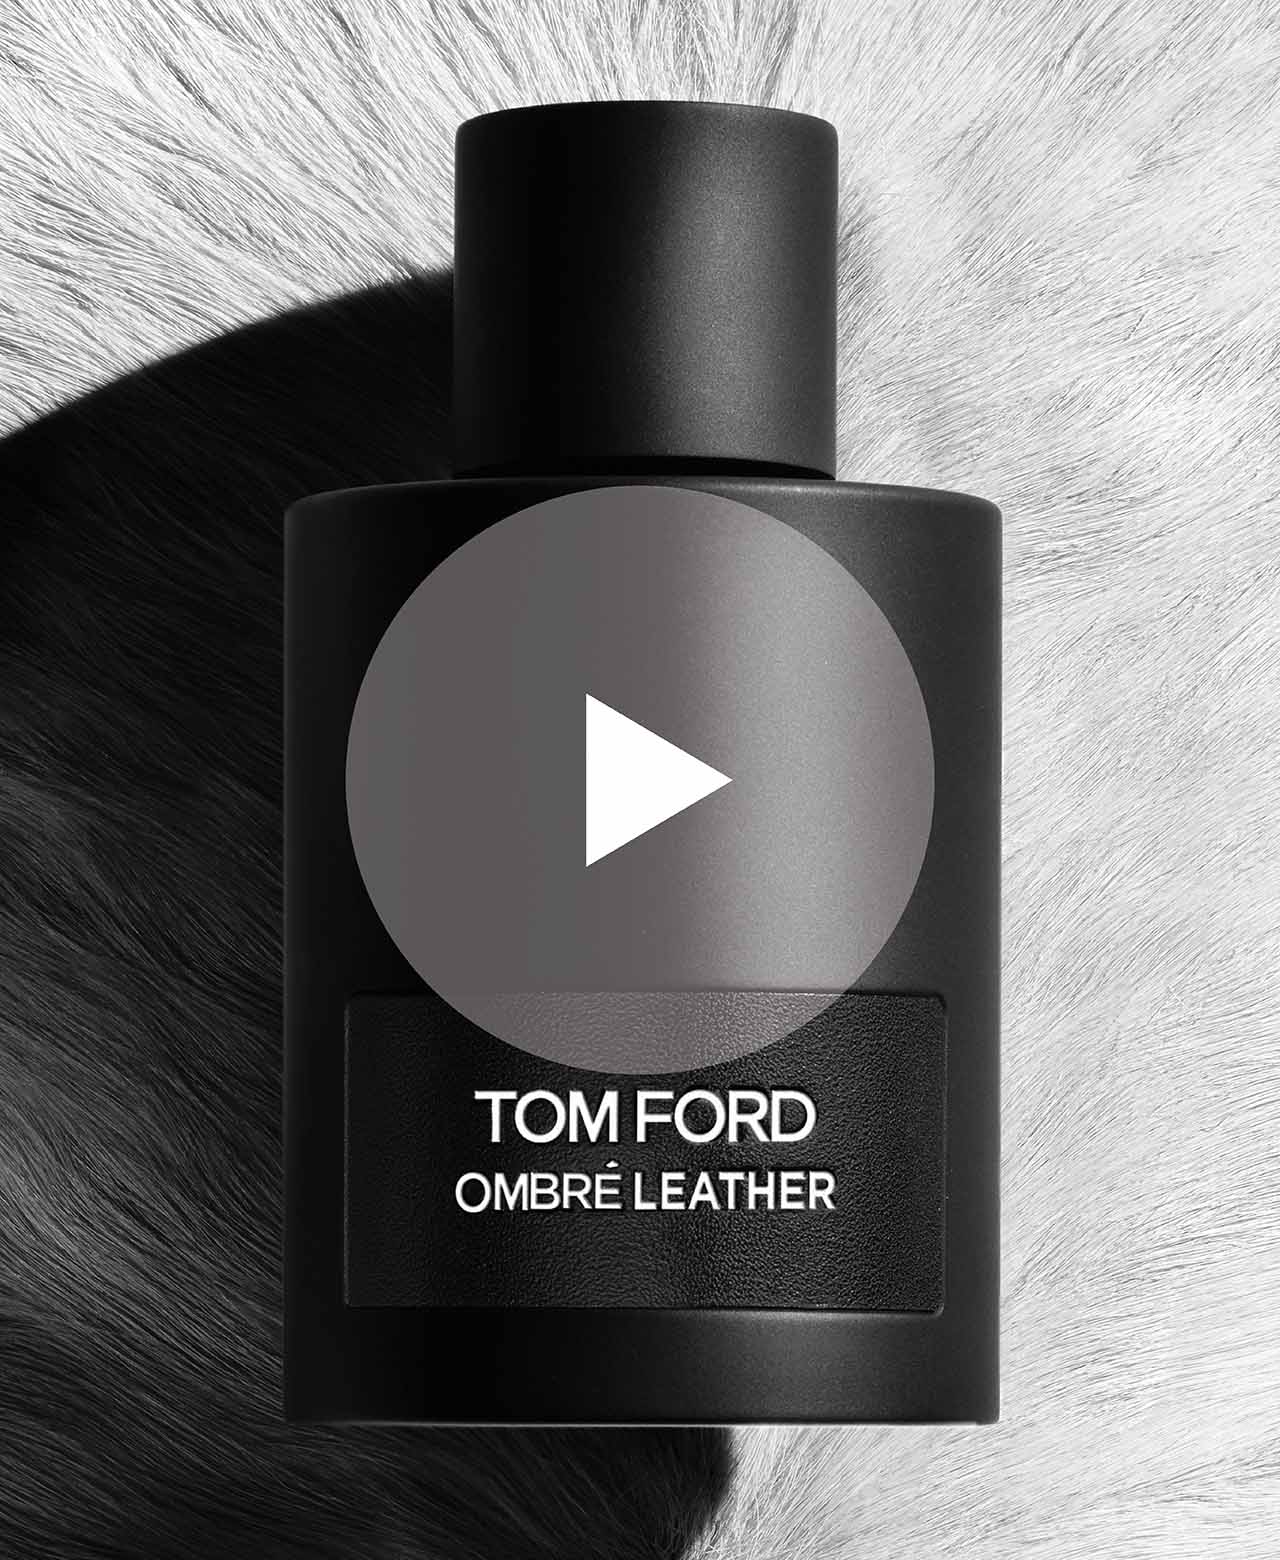 Tom Ford Ombré